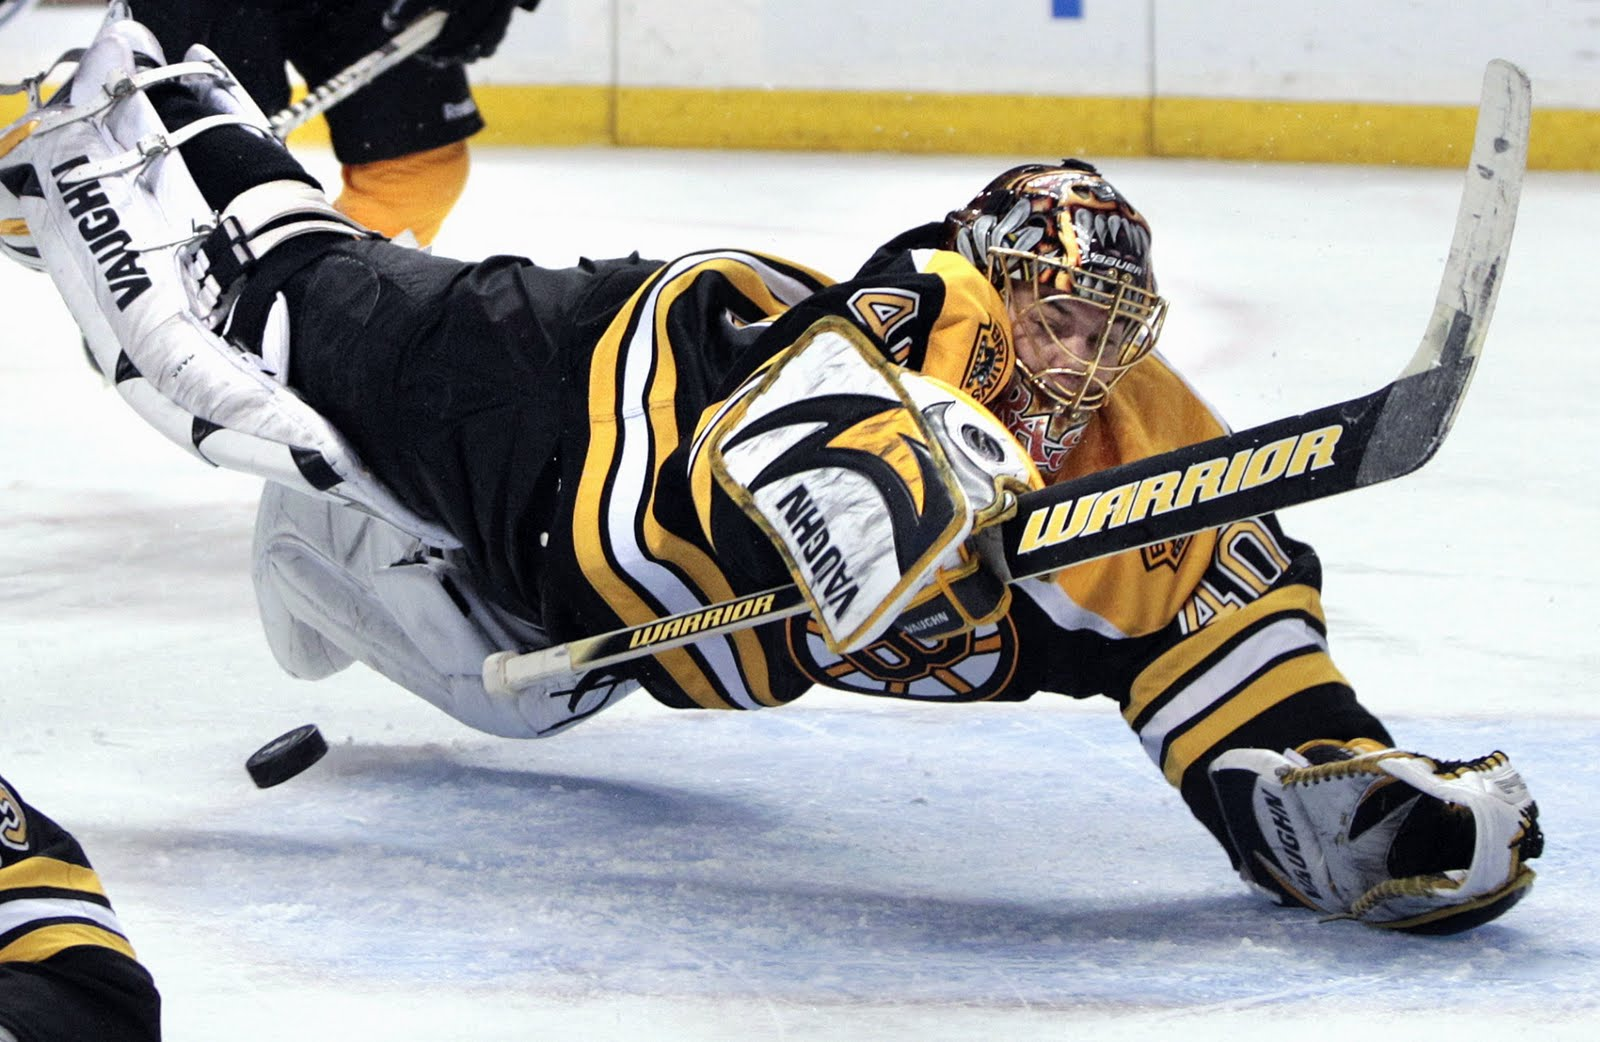 File Under 'What Was That Other Guy's Name... Tim? Thomas?': Tuukka Rask Evolving Into One Of Game's Best